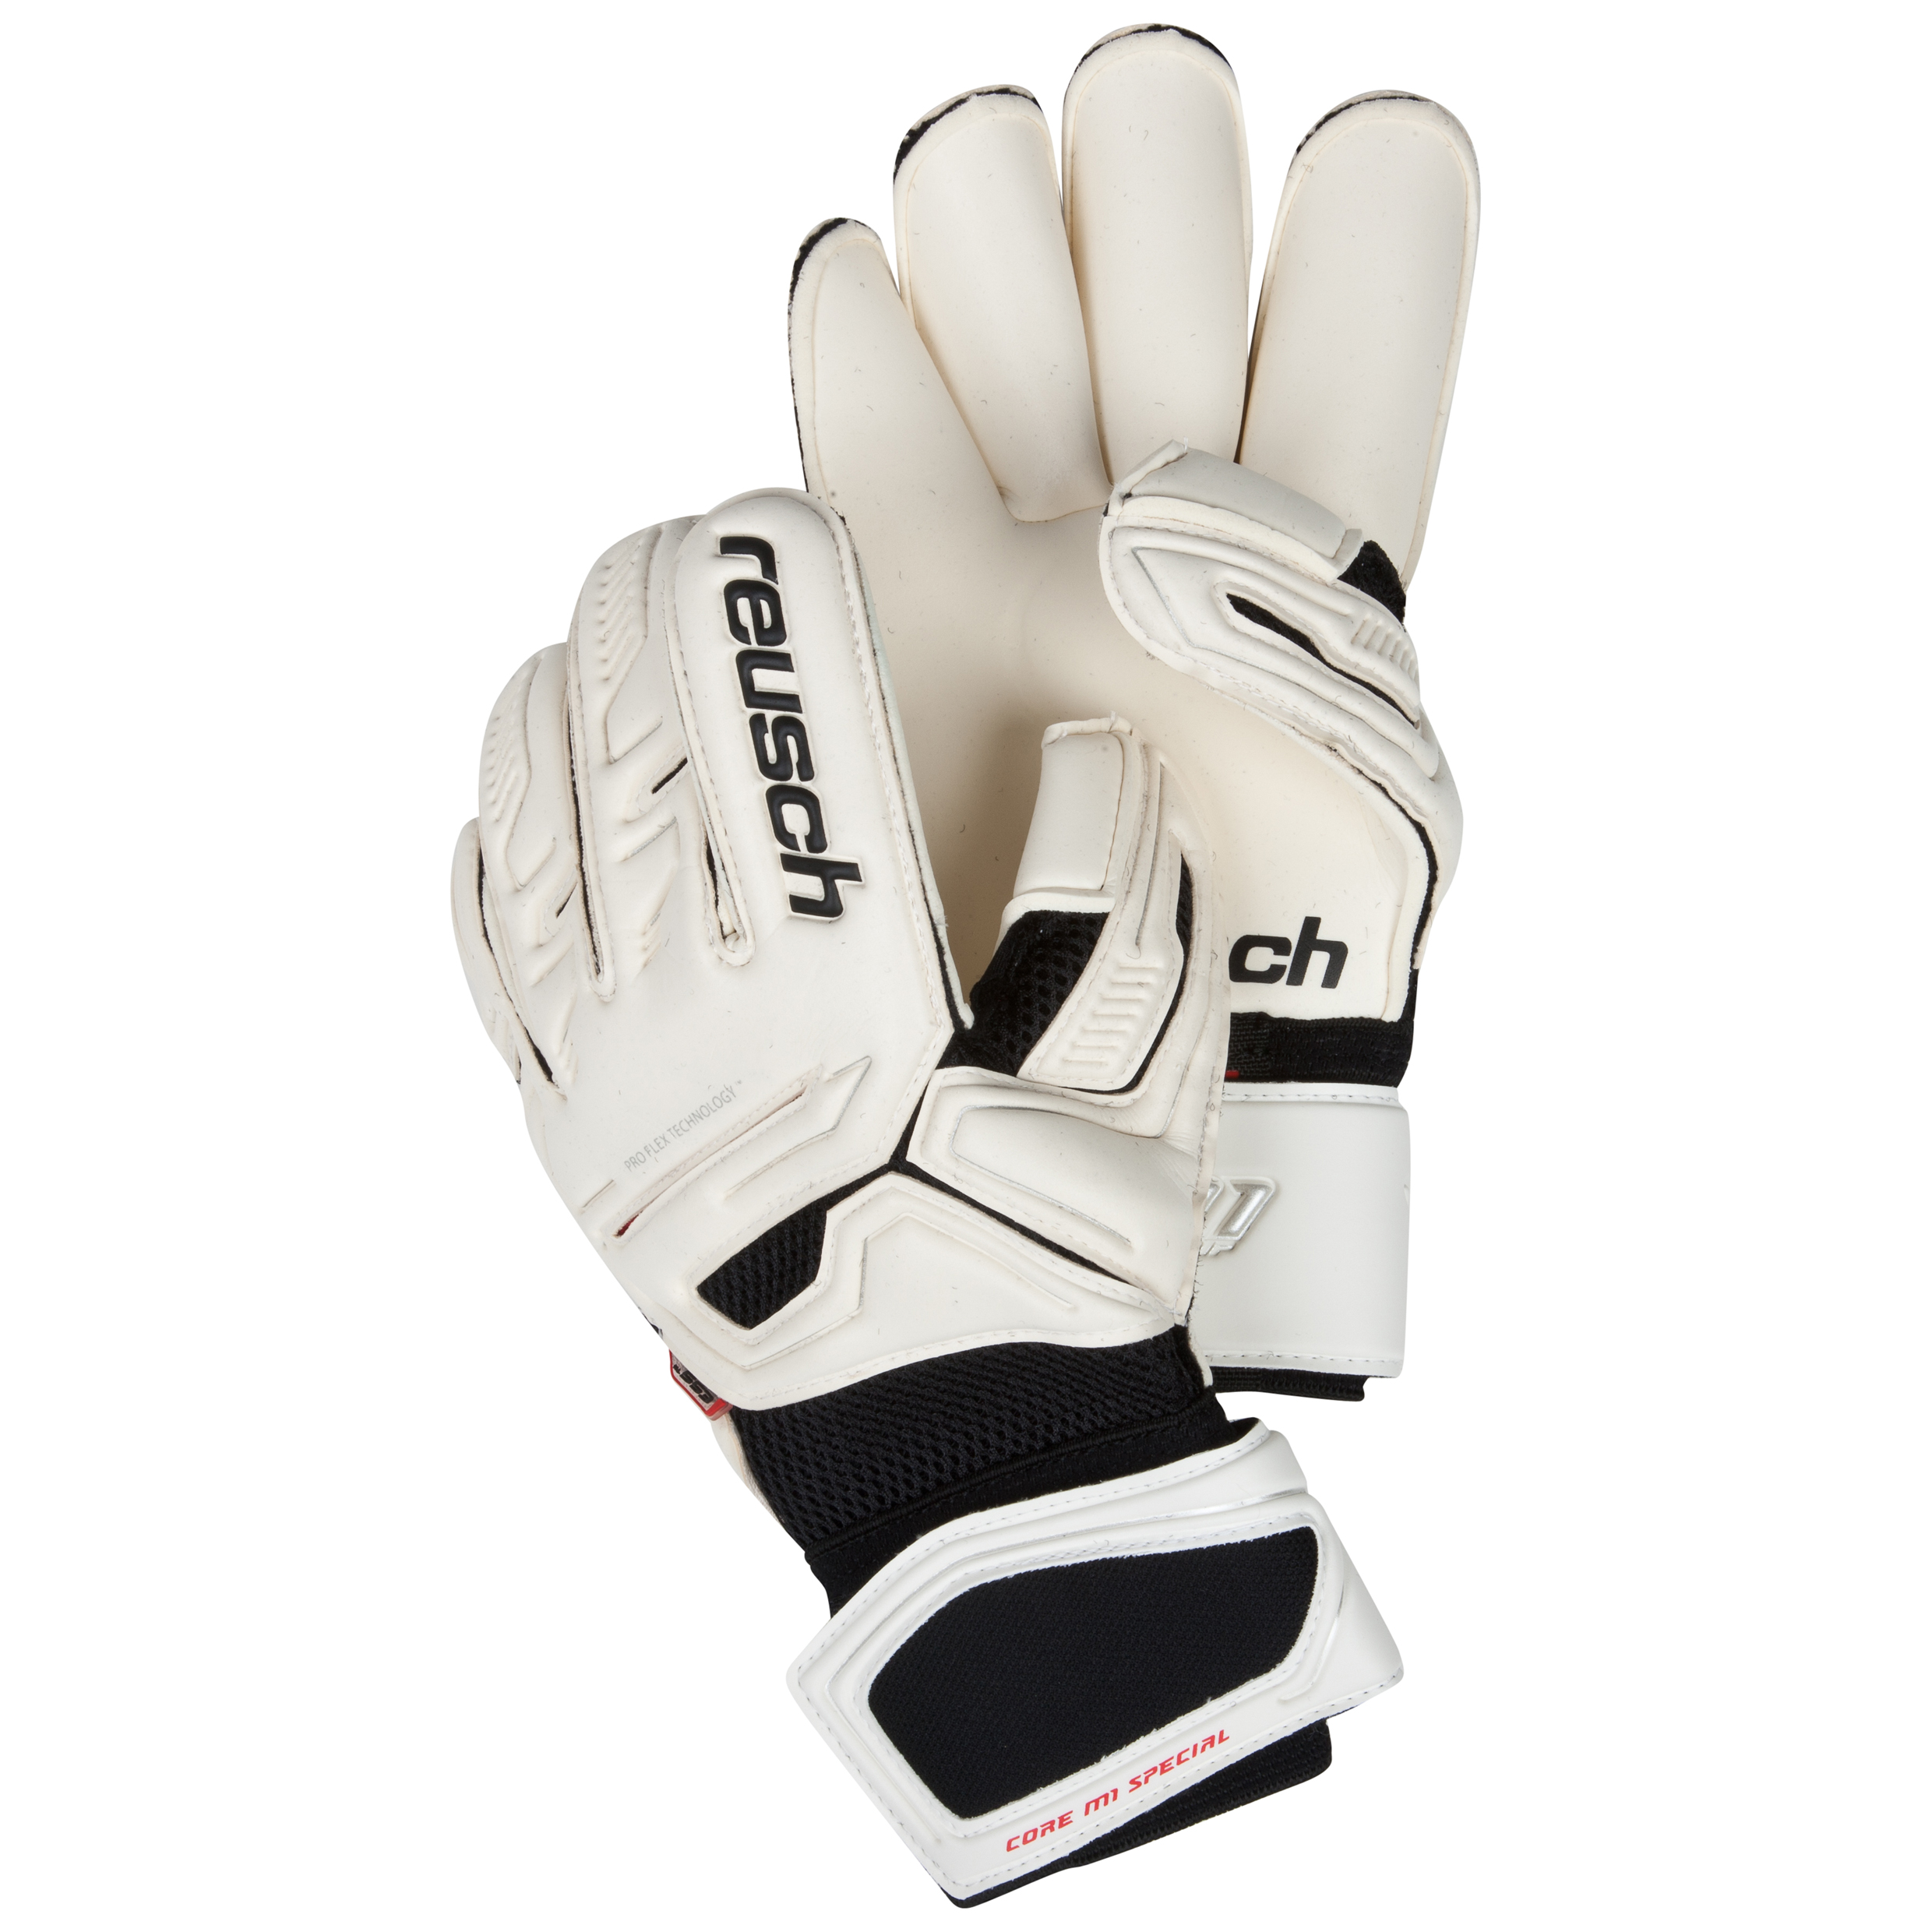 Reusch CF Pro M1 Special?Goalkeeper Gloves-White/Fire Red/Lime Green